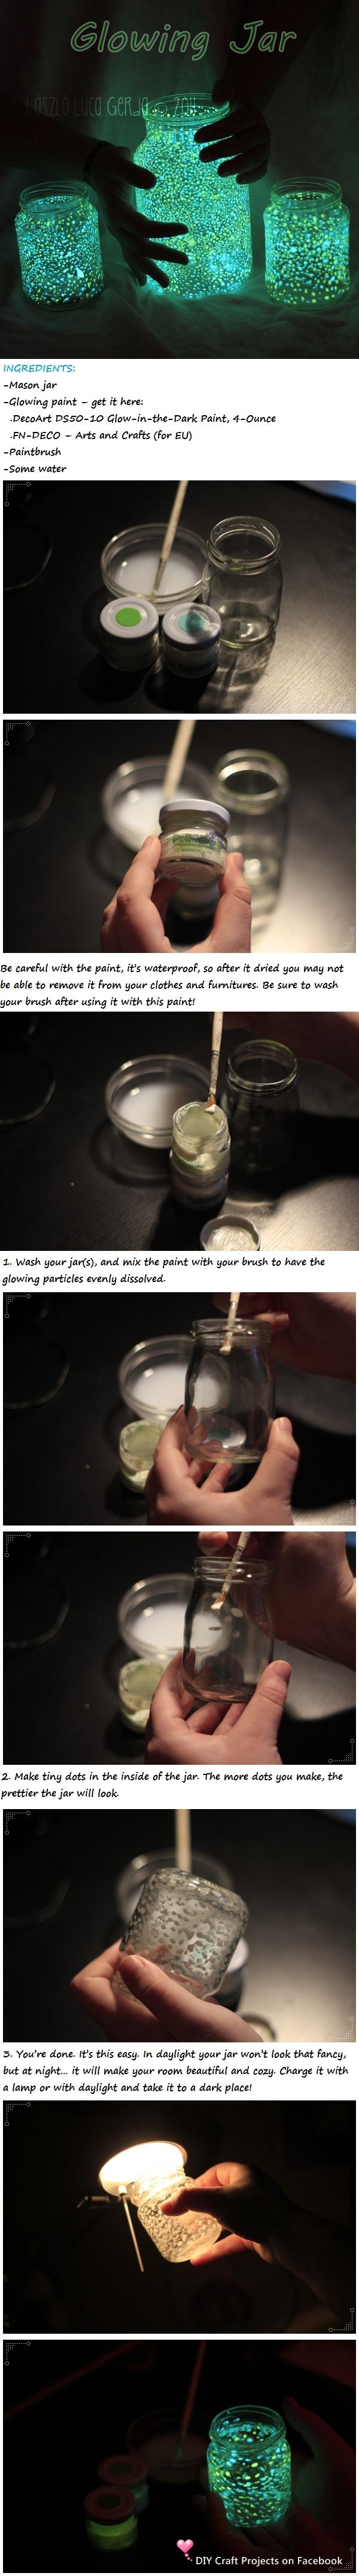 DIY Glowing Jar diy crafts craft ideas easy --but instead of using paint just cut open a glow in the dark glow stick and use that